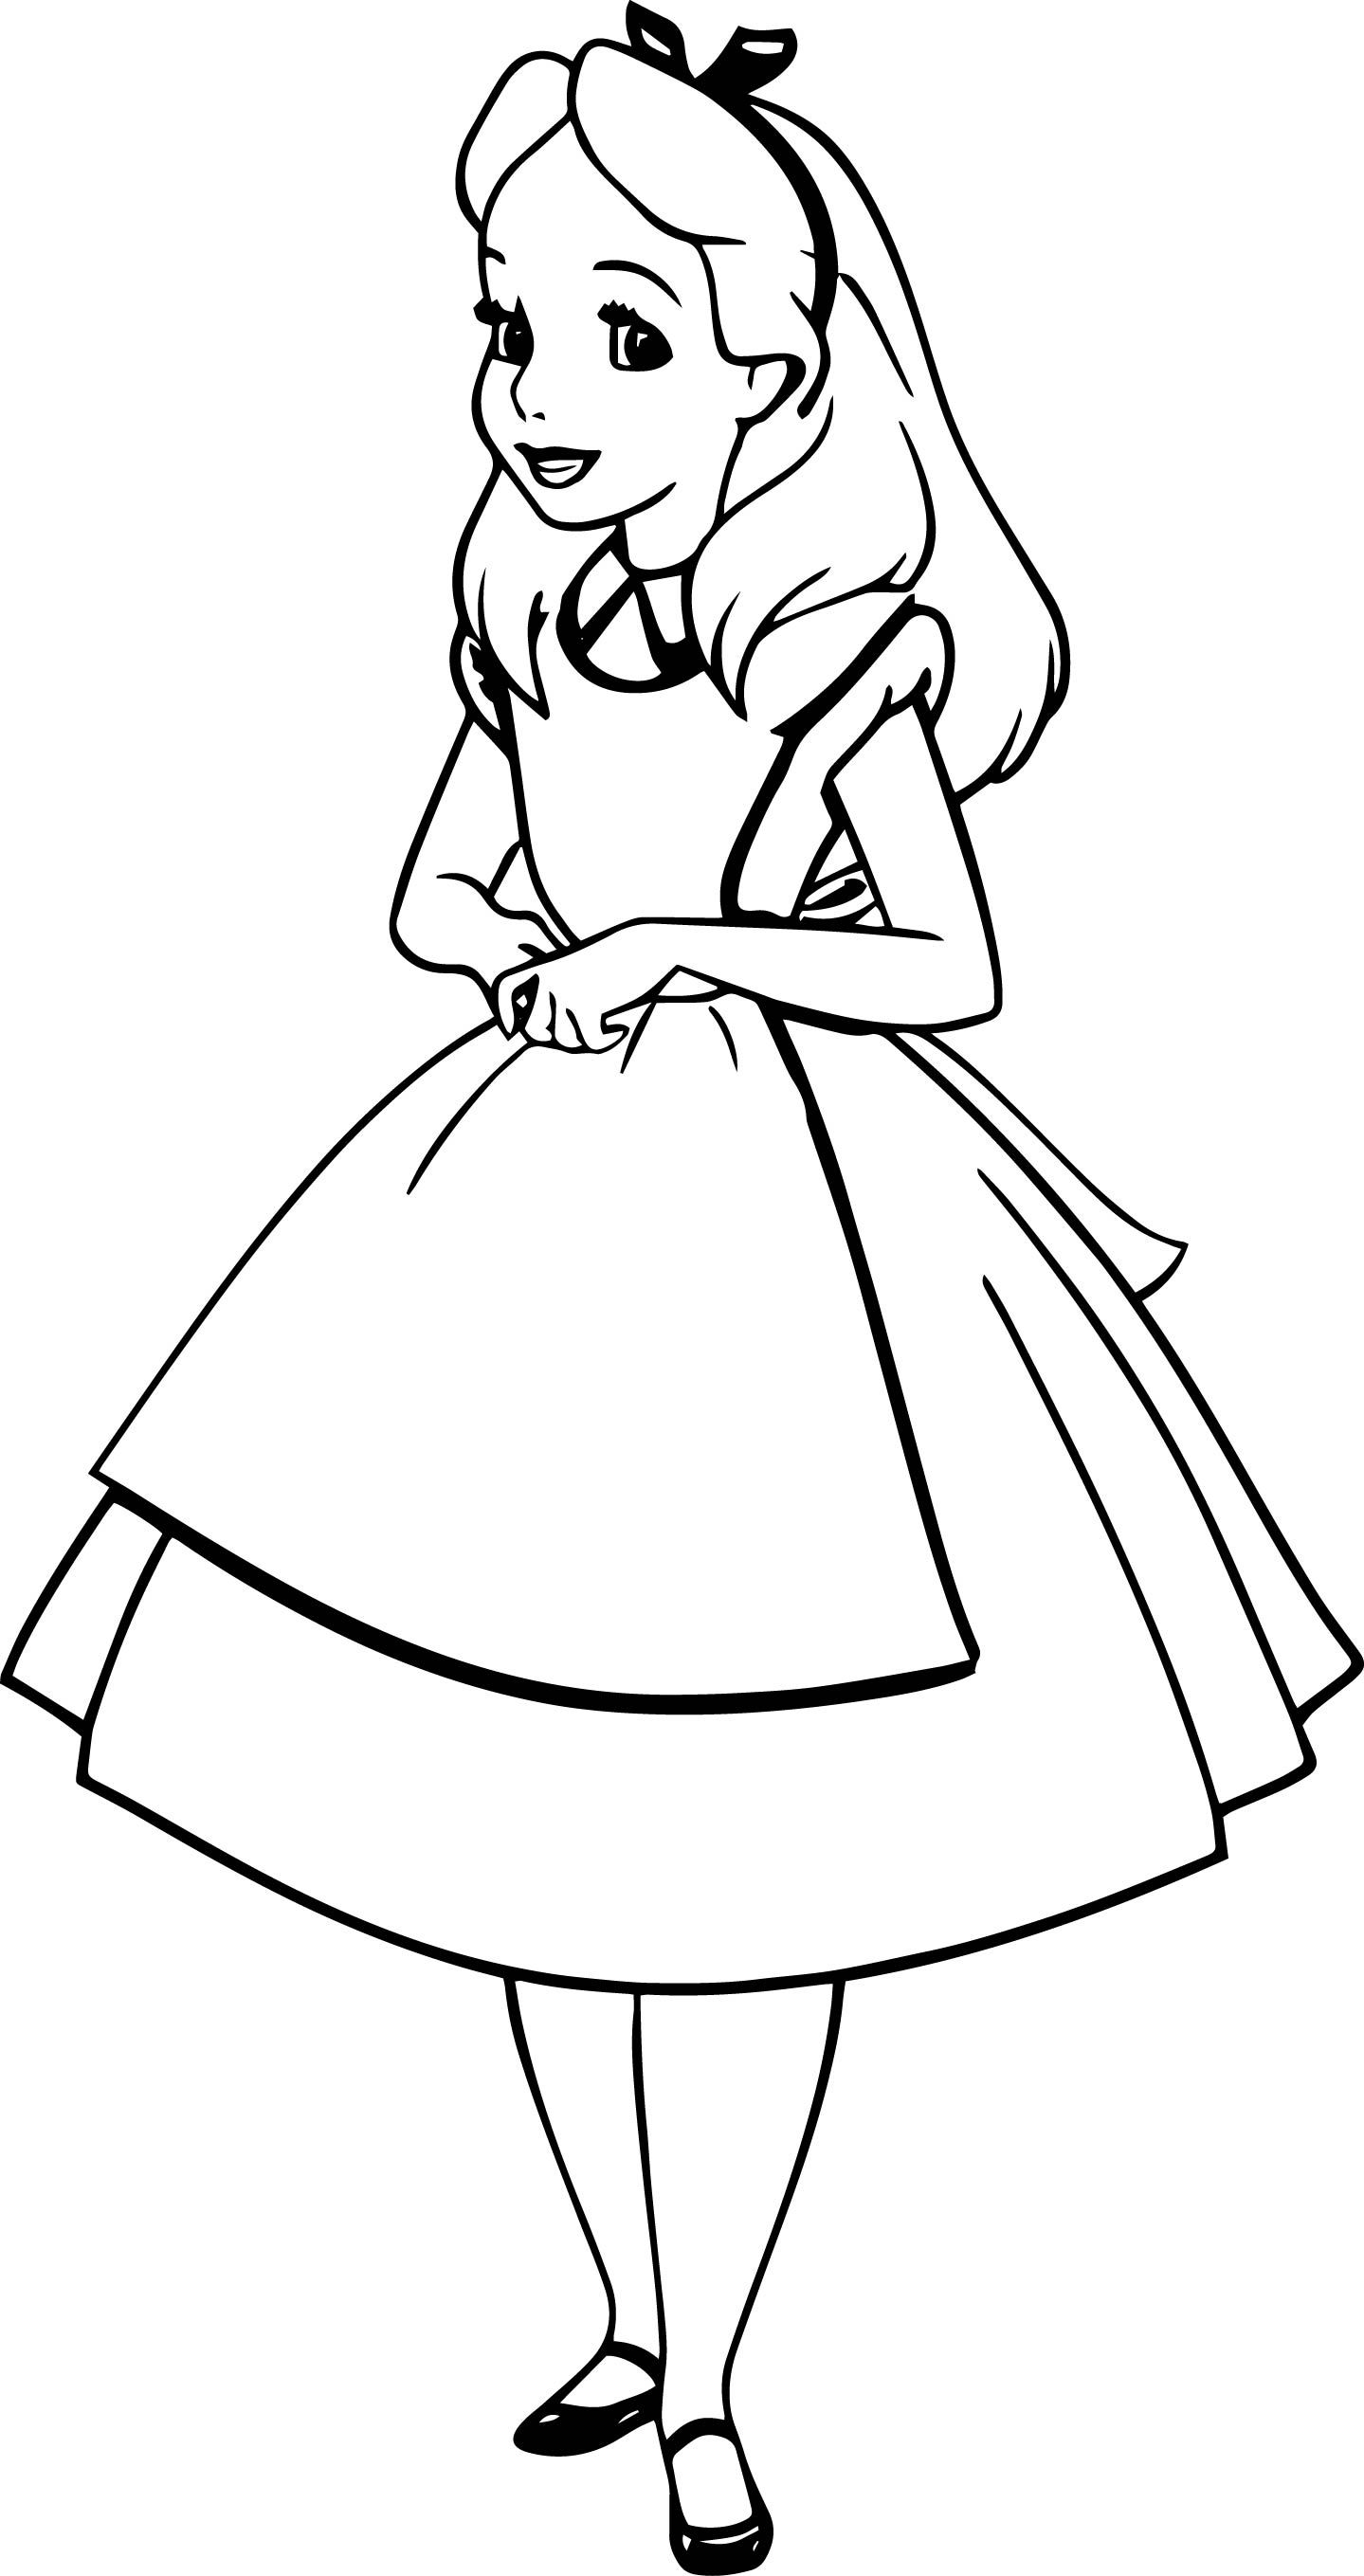 Coloring Page For Alice Alice In Wonderland Characters Alice In Wonderland Disney Alice In Wonderland Drawings